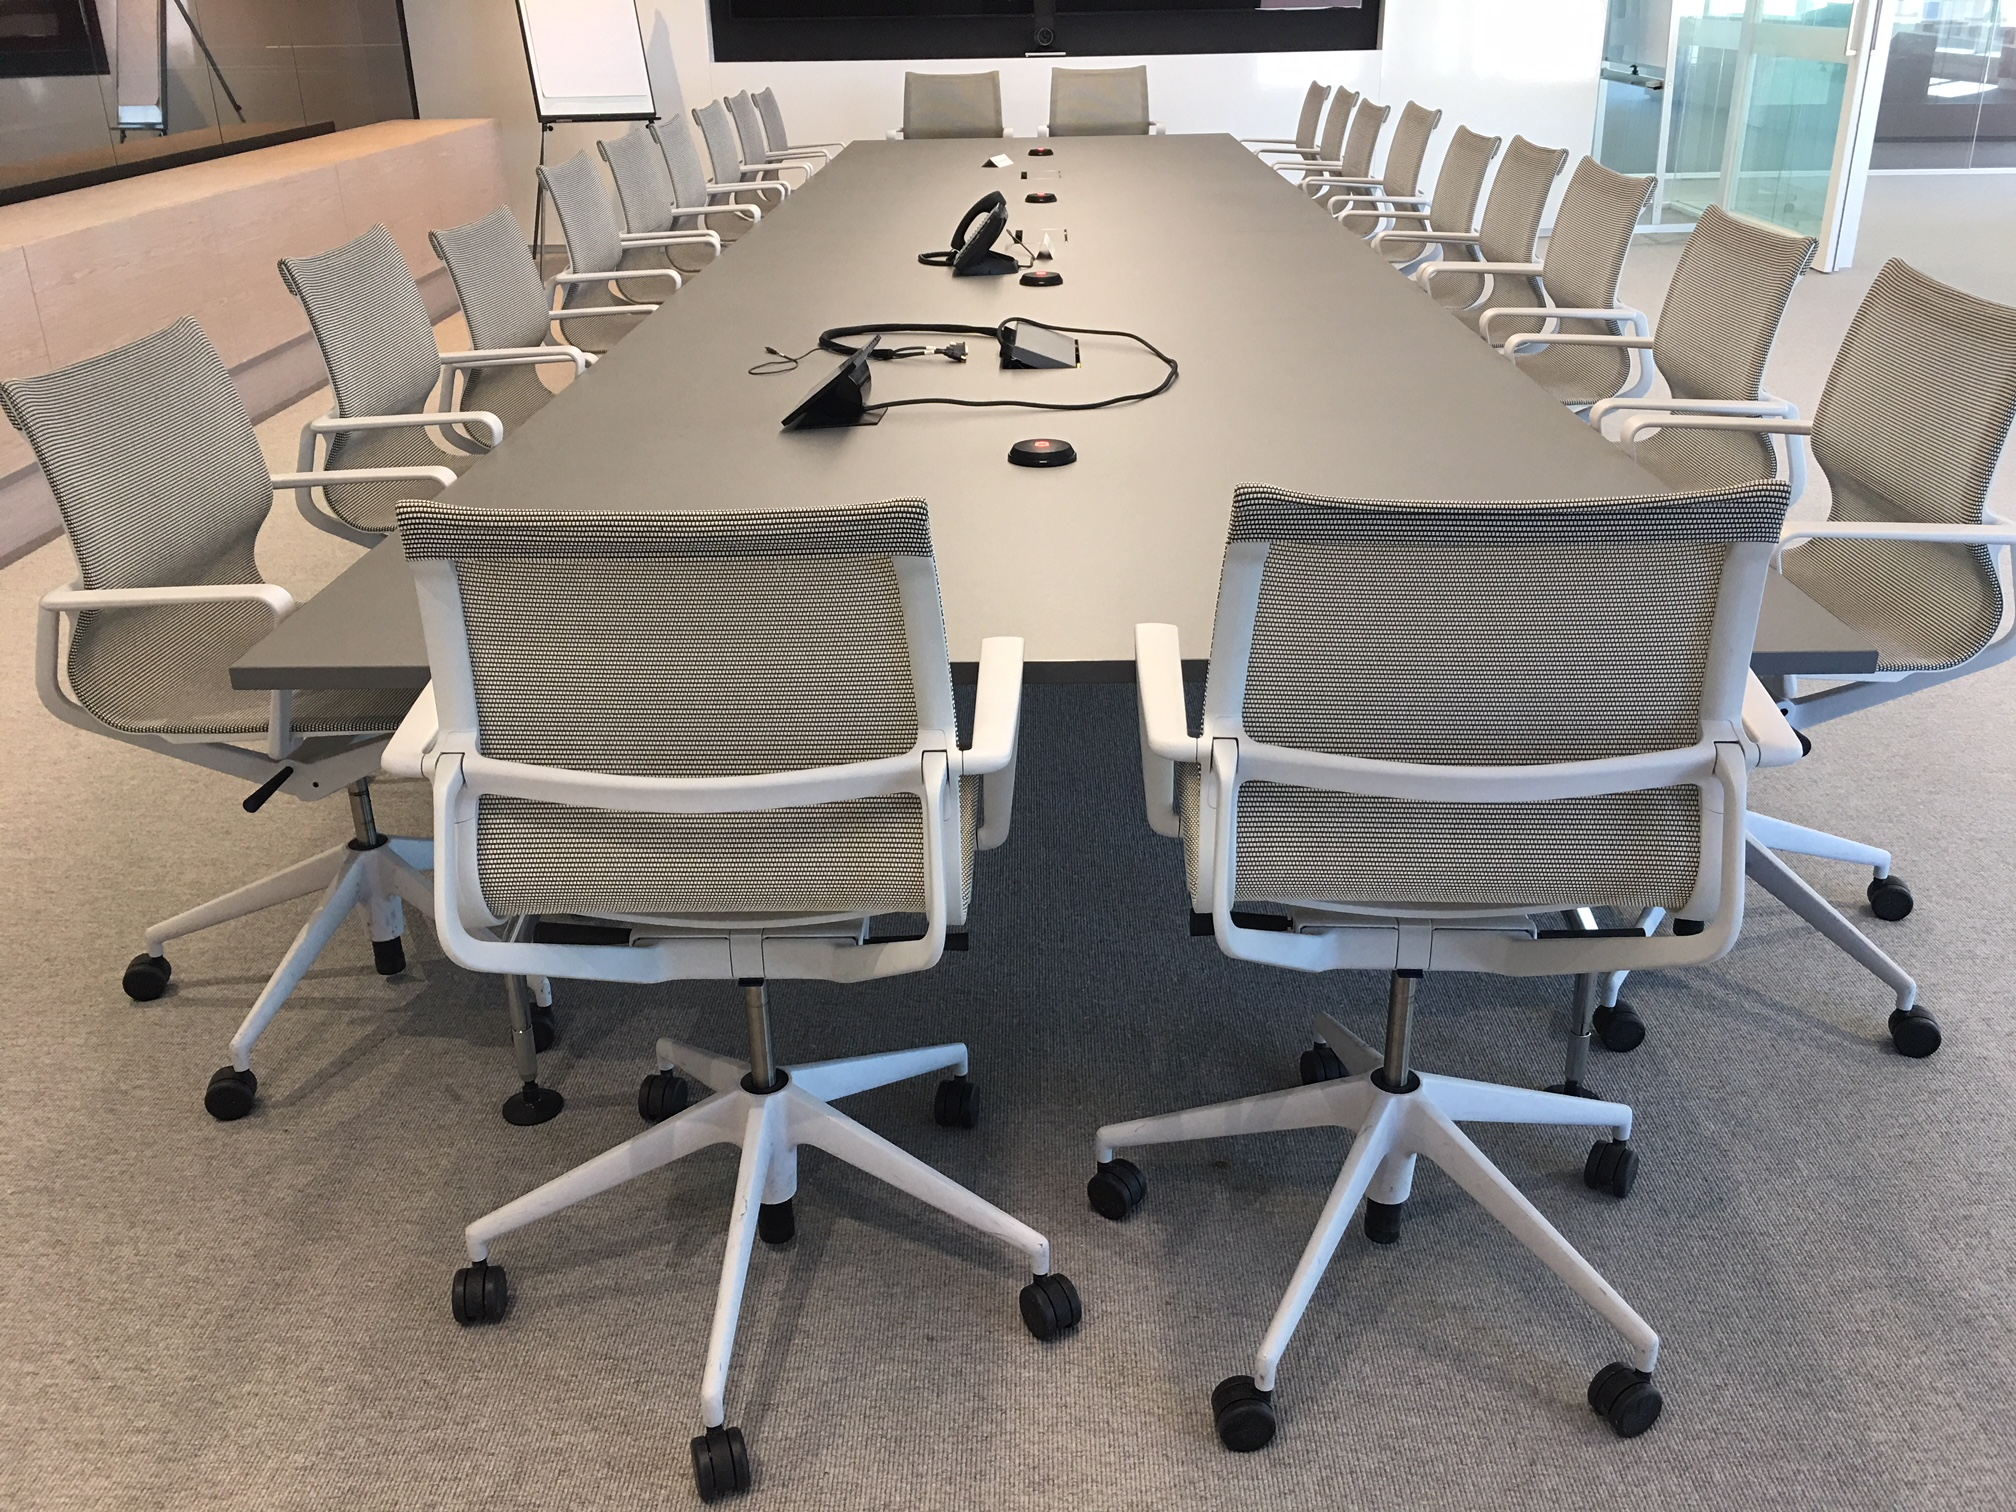 Corporate Boardroom with large Board table and chairs